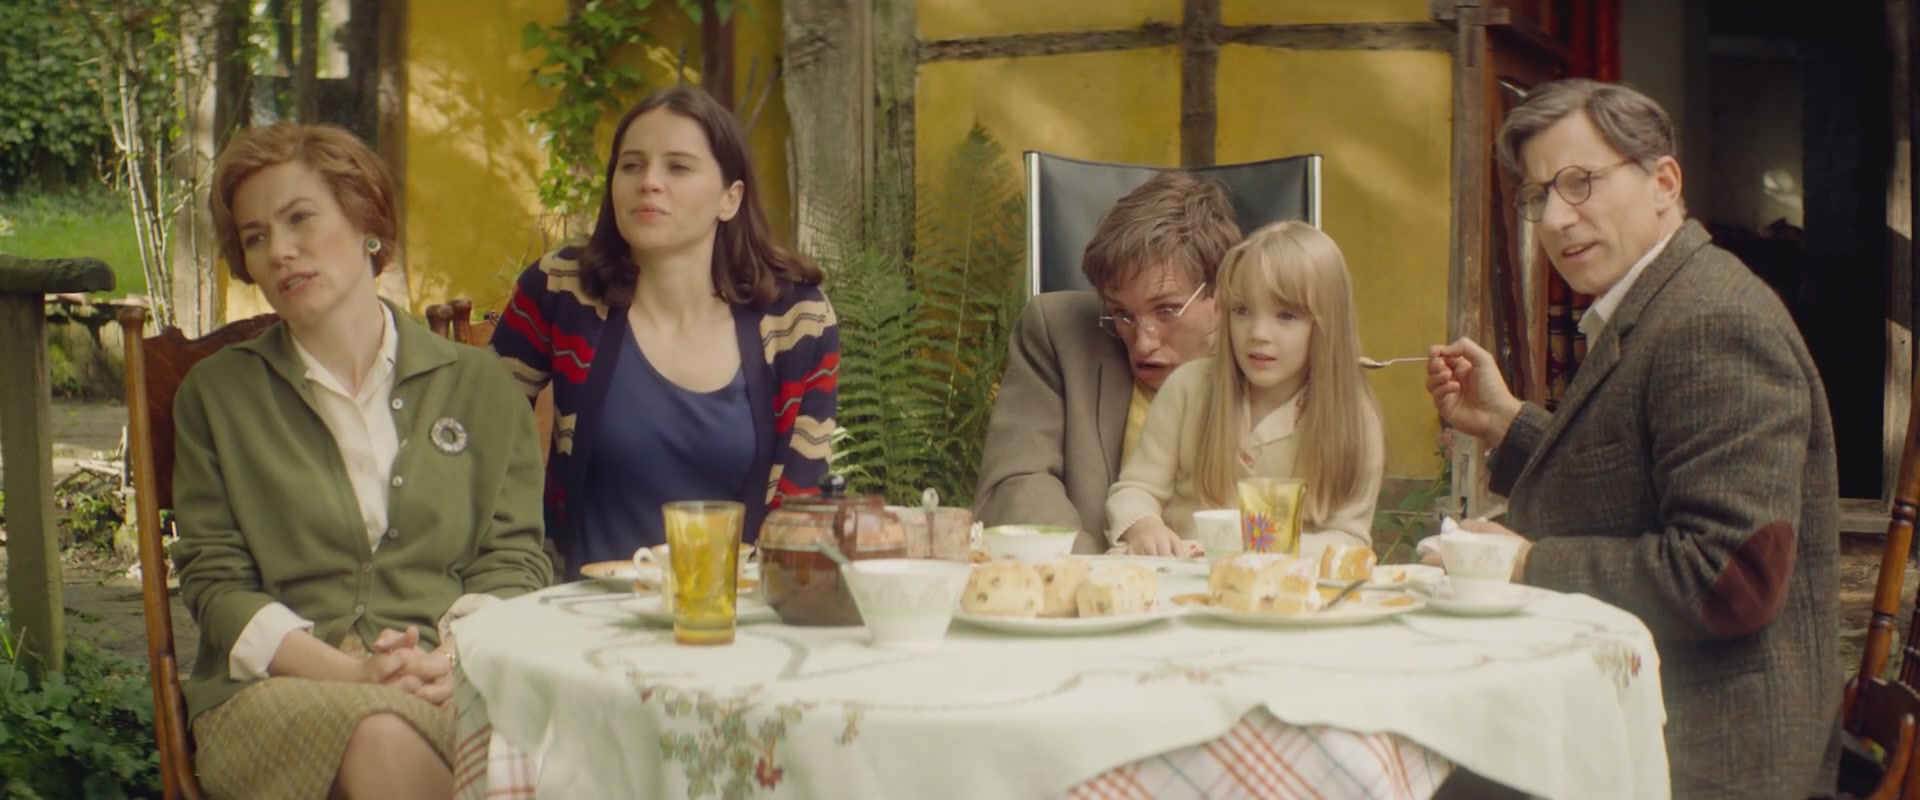 Abigail Cruttenden, Felicity Jones, Simon McBurney, Eddie Redmayne, and Raffiella Chapman in The Theory of Everything (2014)